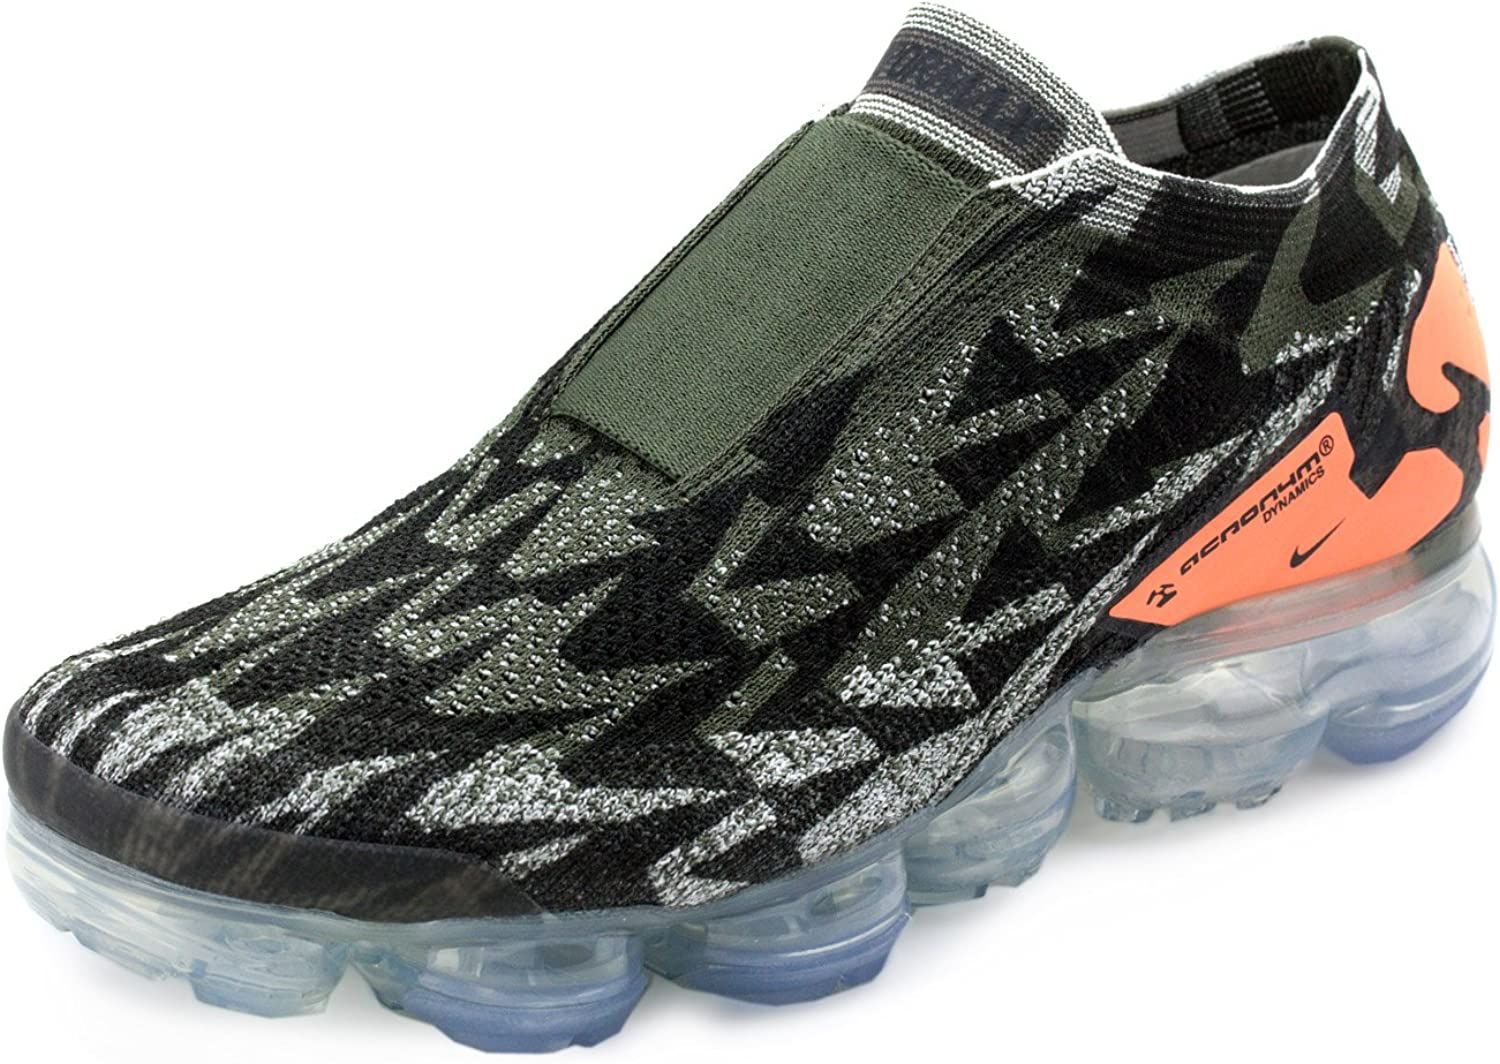 evidencia Entretener proteína  Amazon.com | Nike Air Vapormax Fk Moc 2 / Acronym Mens Running Trainers  Aq0996 Sneakers Shoes | Road Running